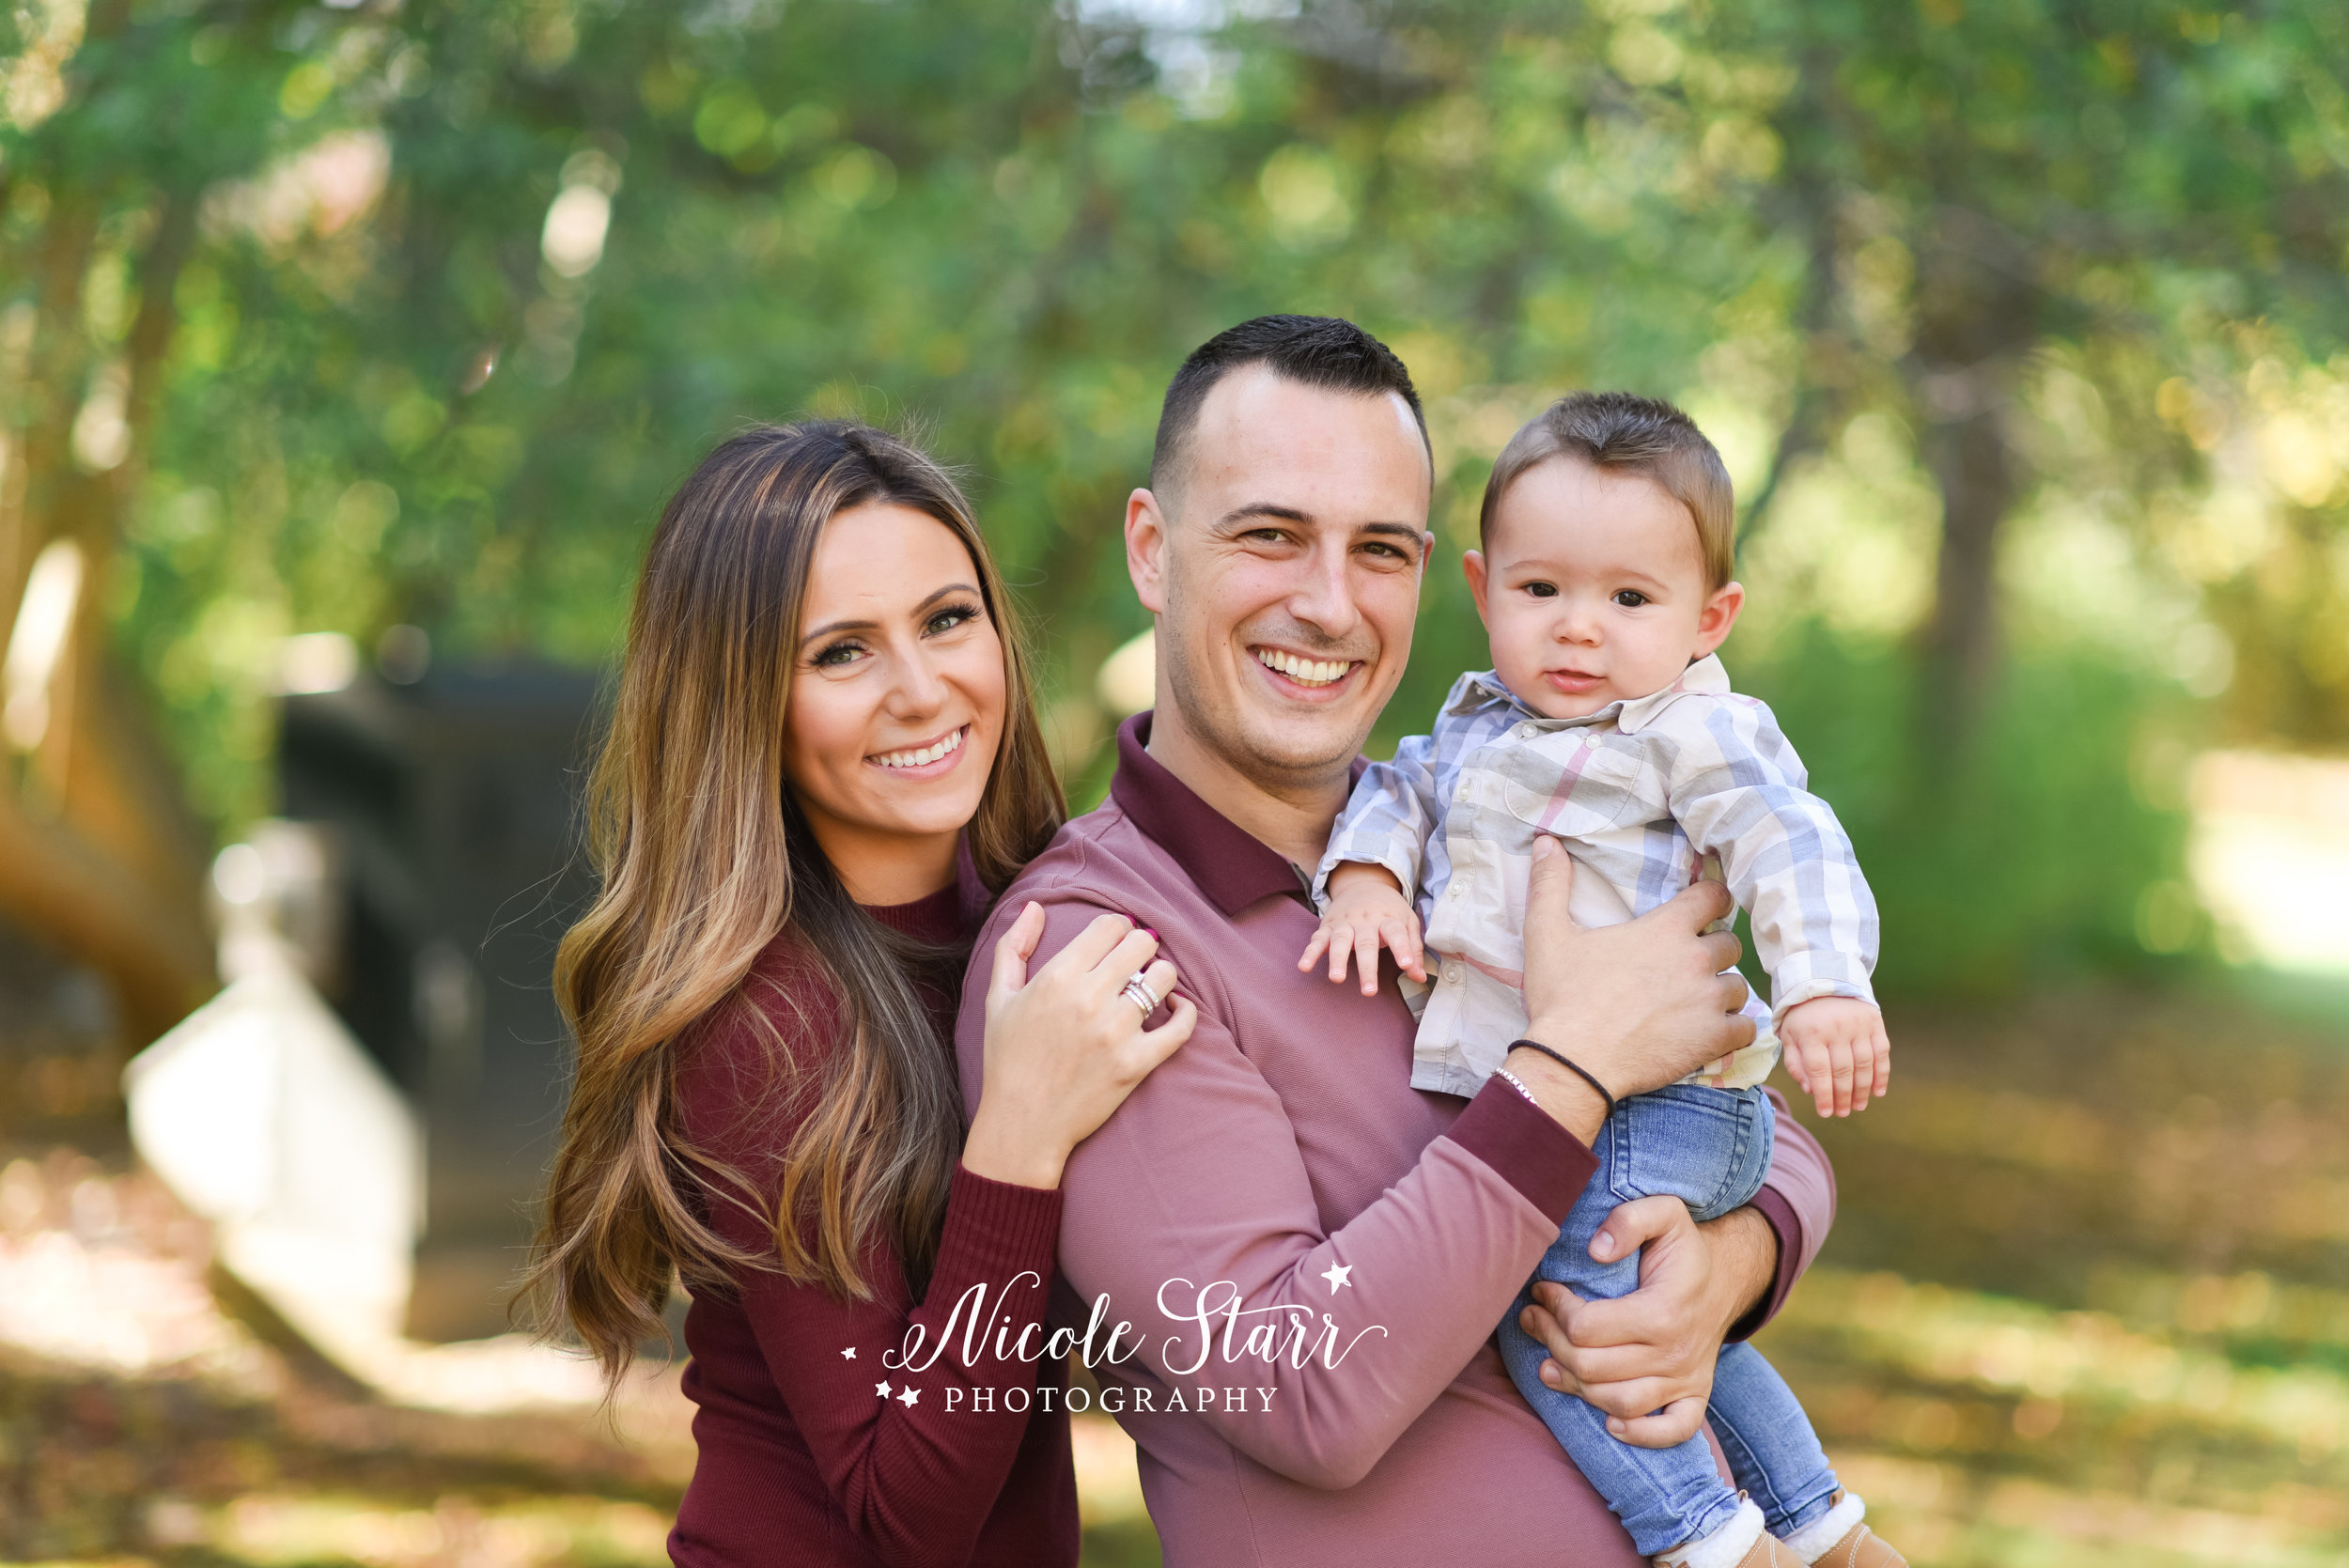 fall family mini session, foliage family photos, fall family photos saratoga springs, nicole starr photography